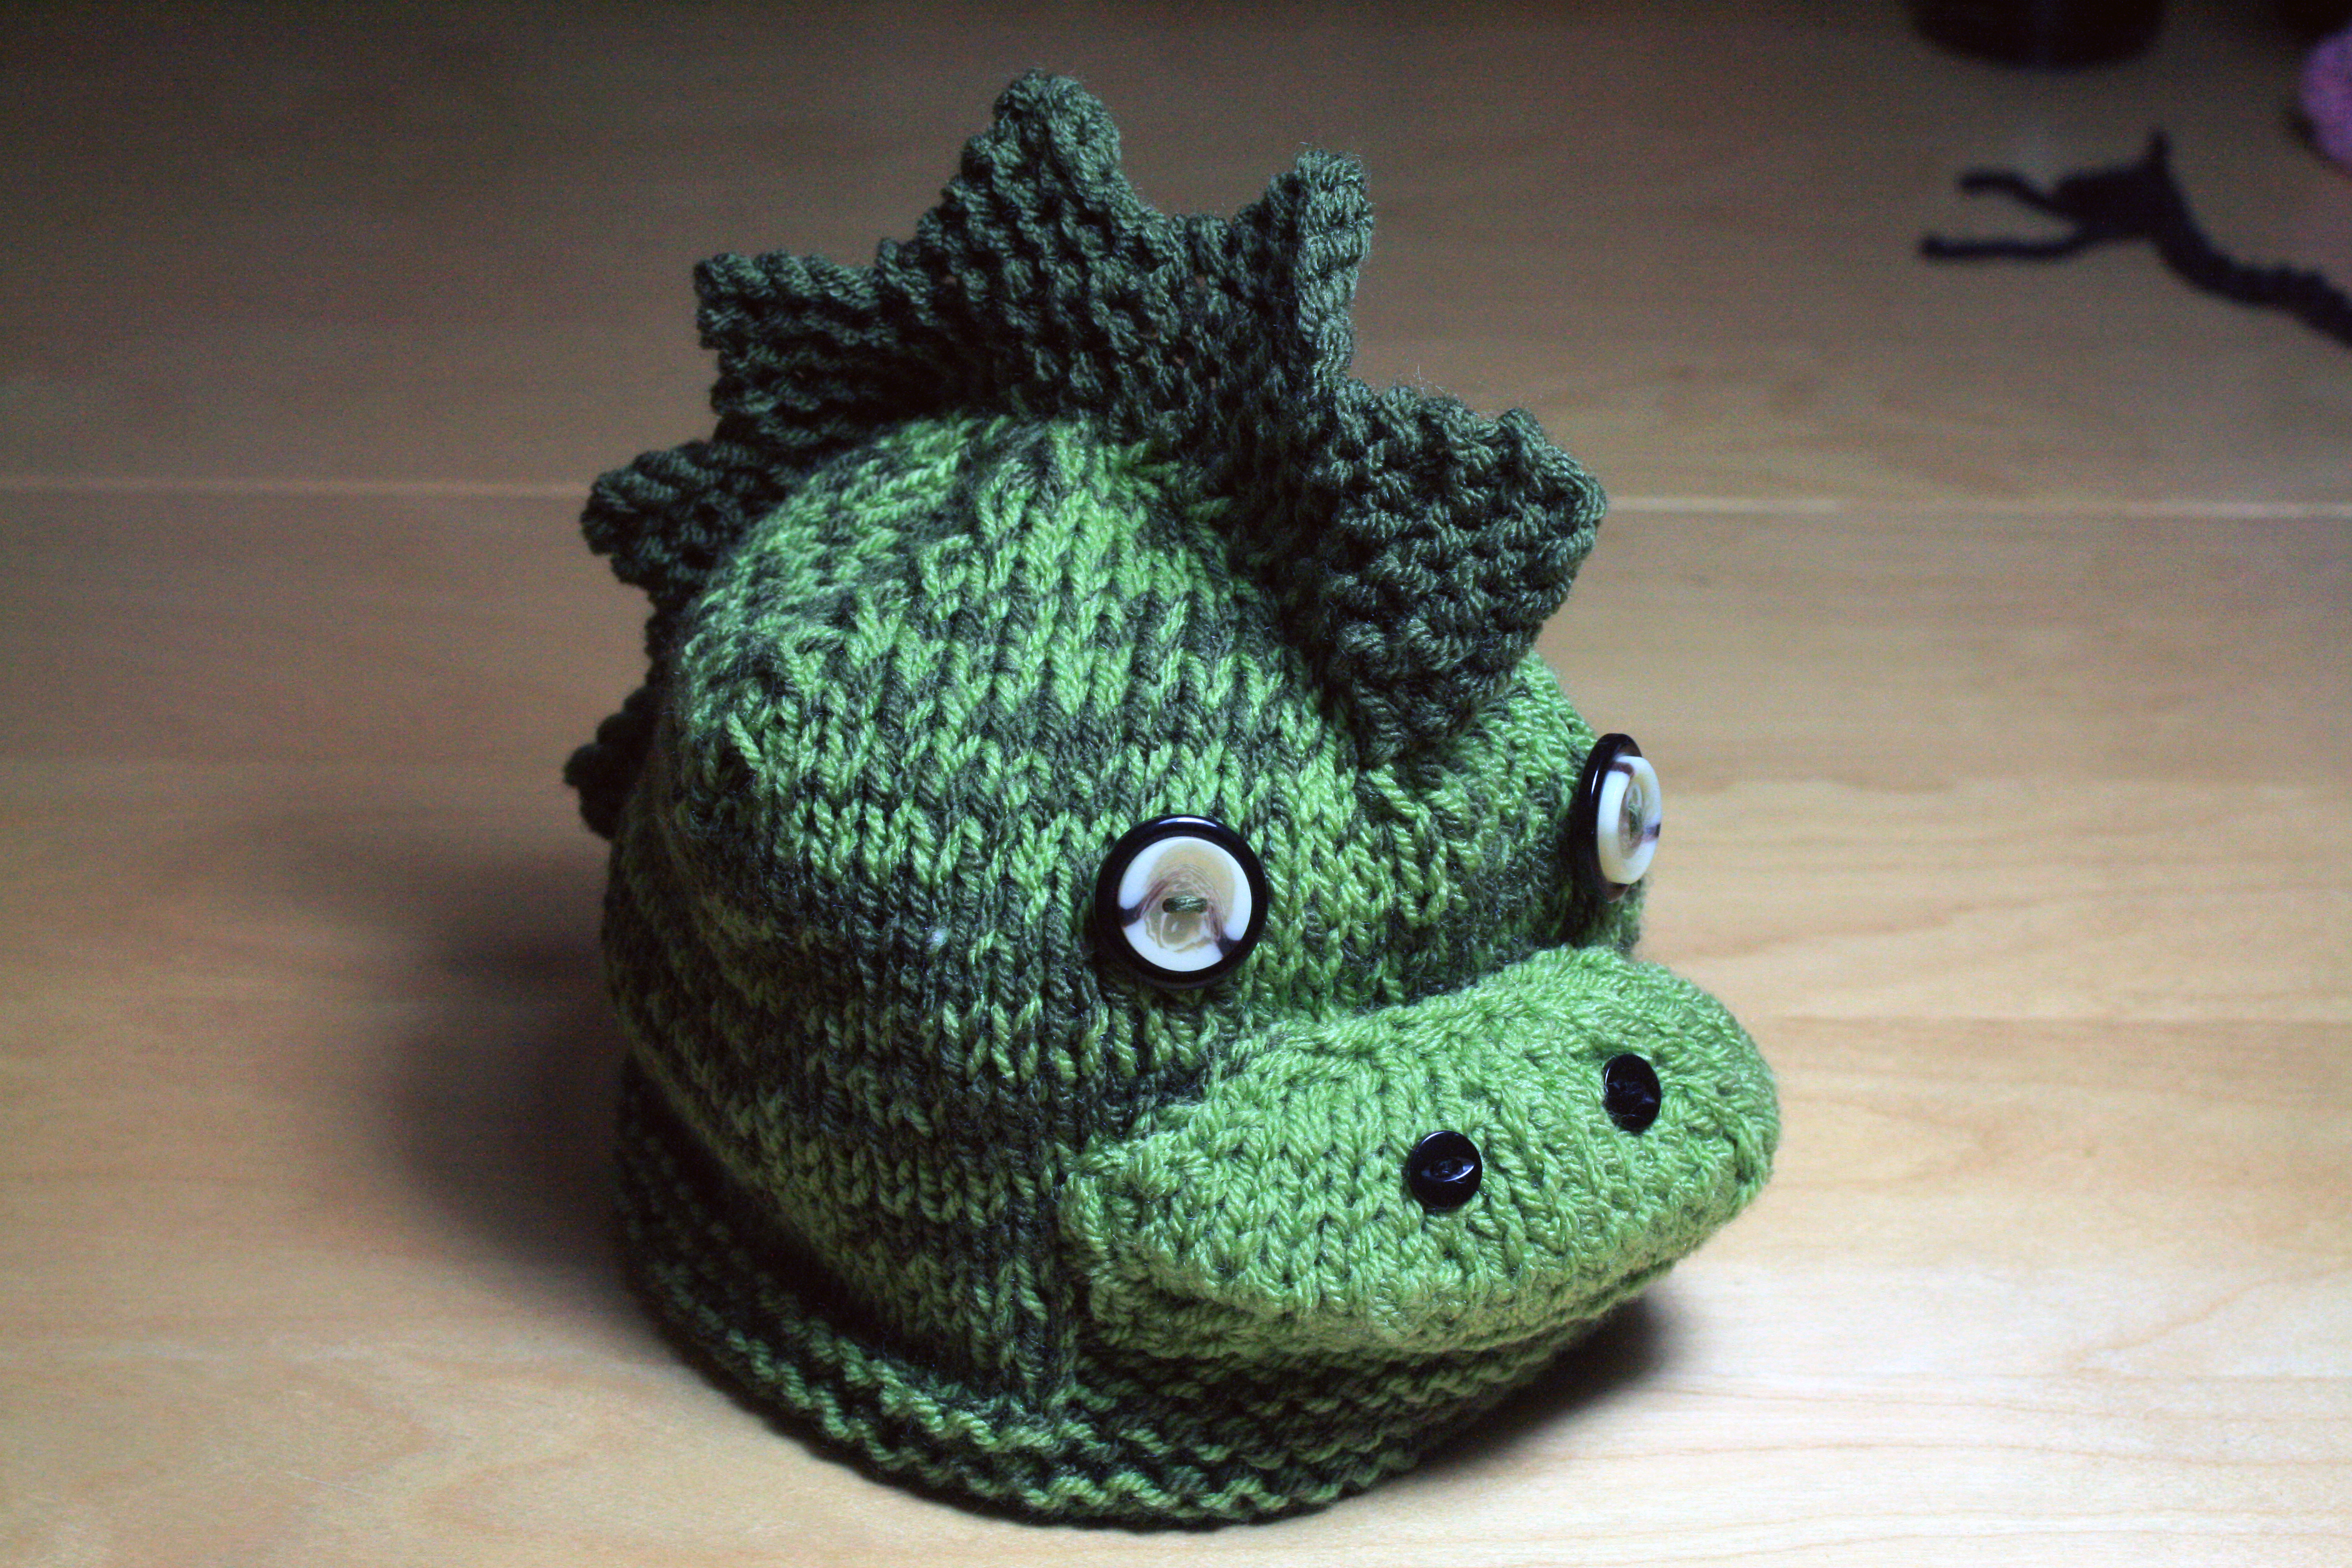 Knitting Patterns For Dinosaurs : Knitted Dinosaur Hat